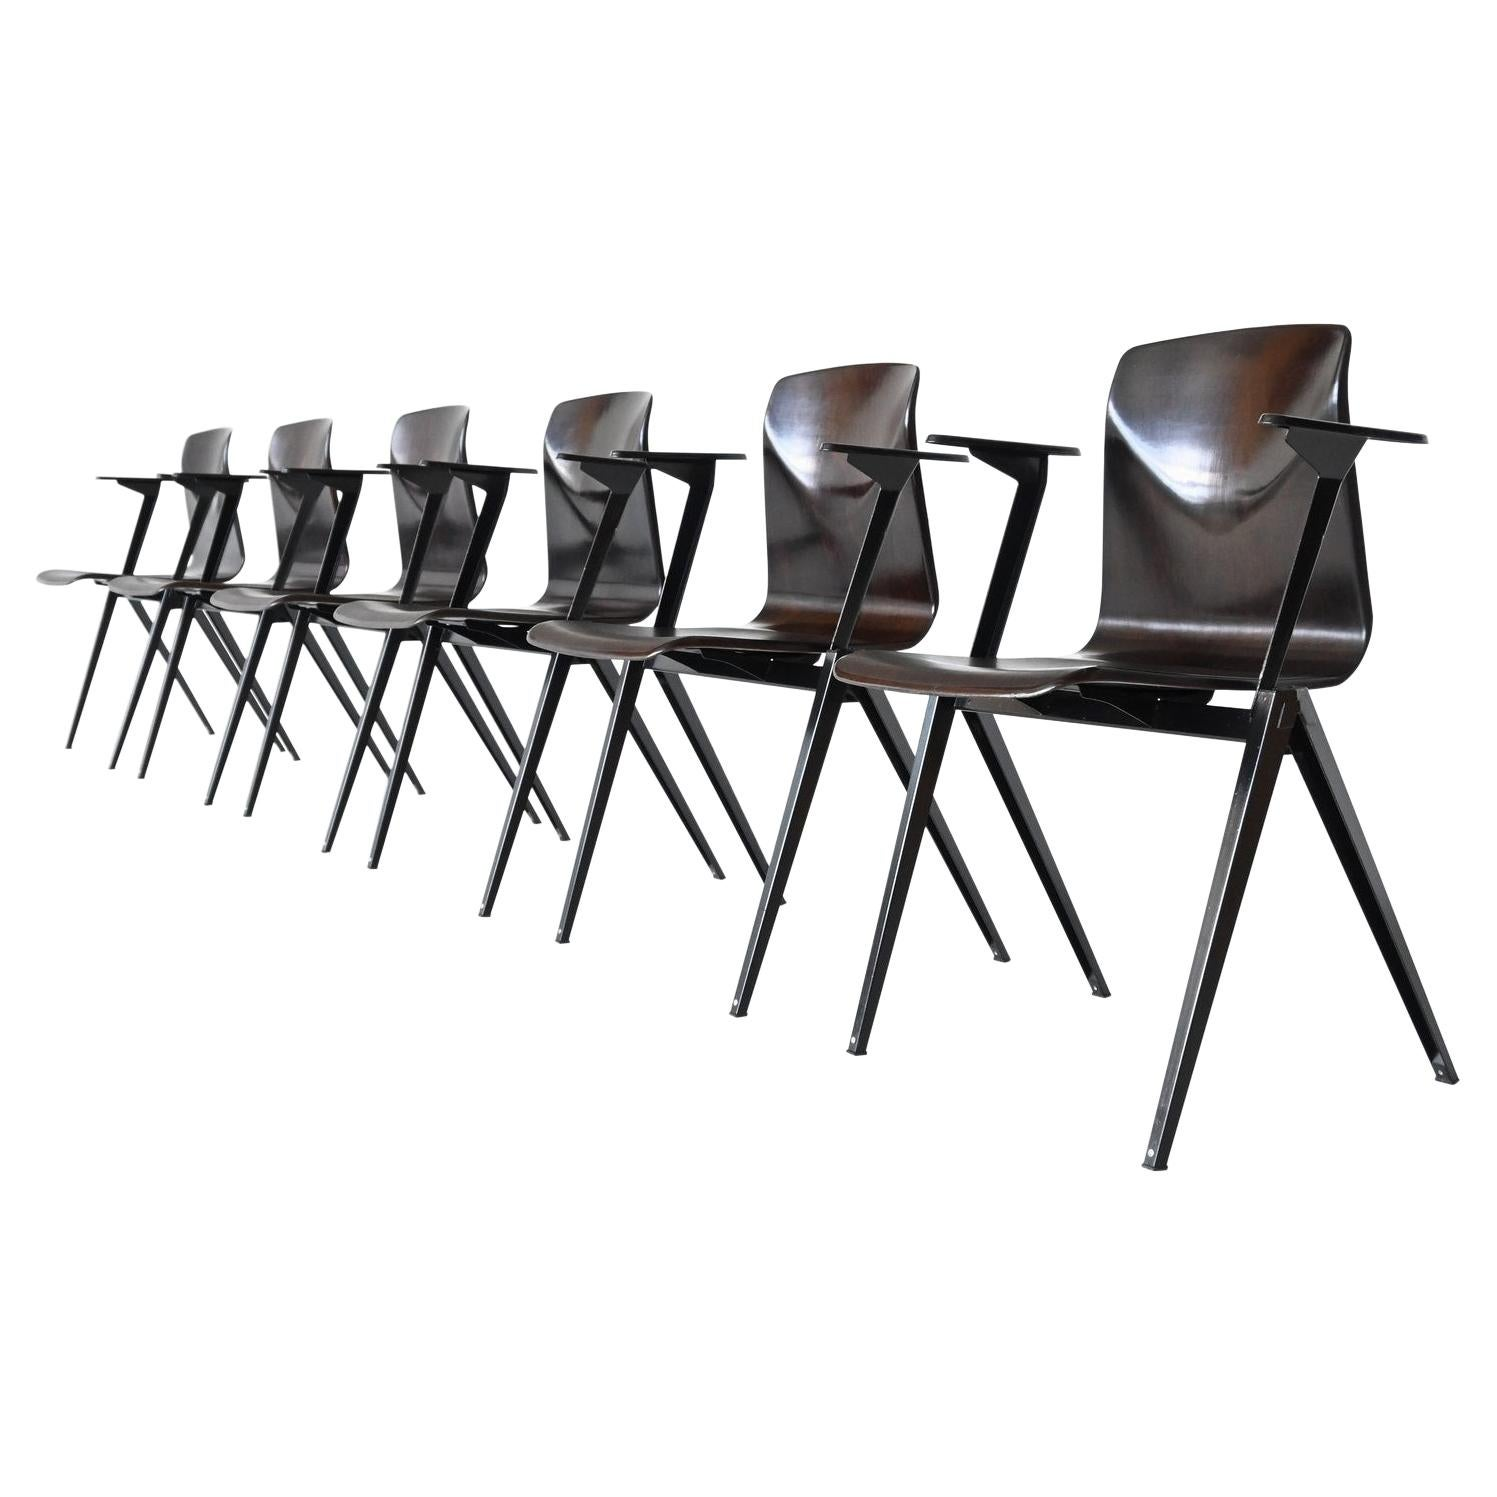 Elmar Flototto Model S22 Stacking Chairs with Arms Pagholz Germany 1970